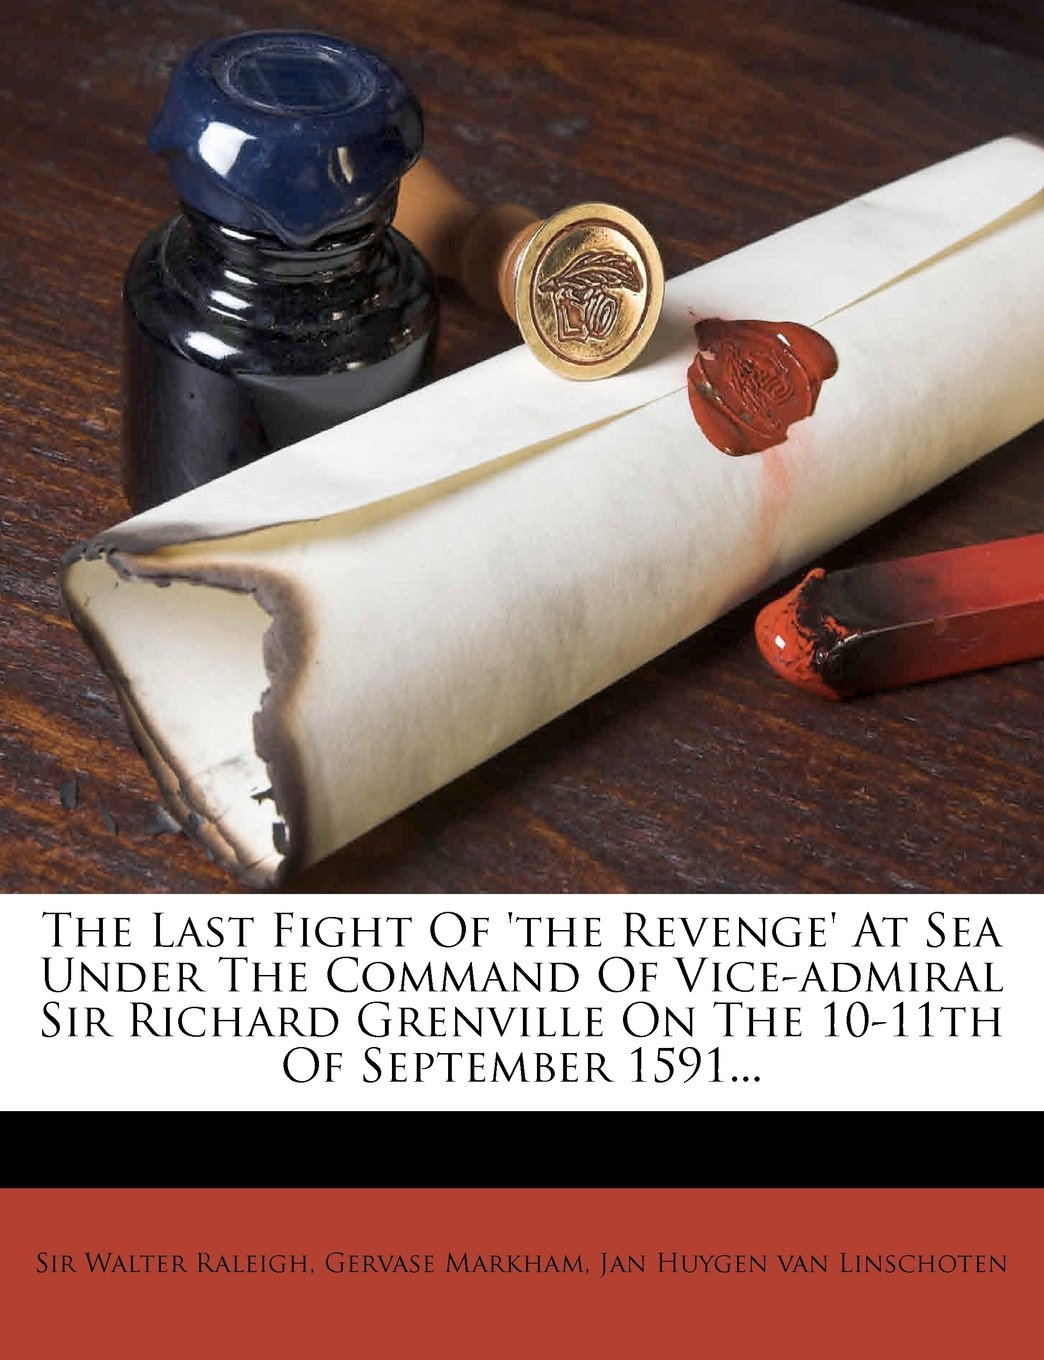 The Last Fight Of 'the Revenge' At Sea Under The Command Of Vice-admiral Sir Richard Grenville On The 10-11th Of September 1591. PDF